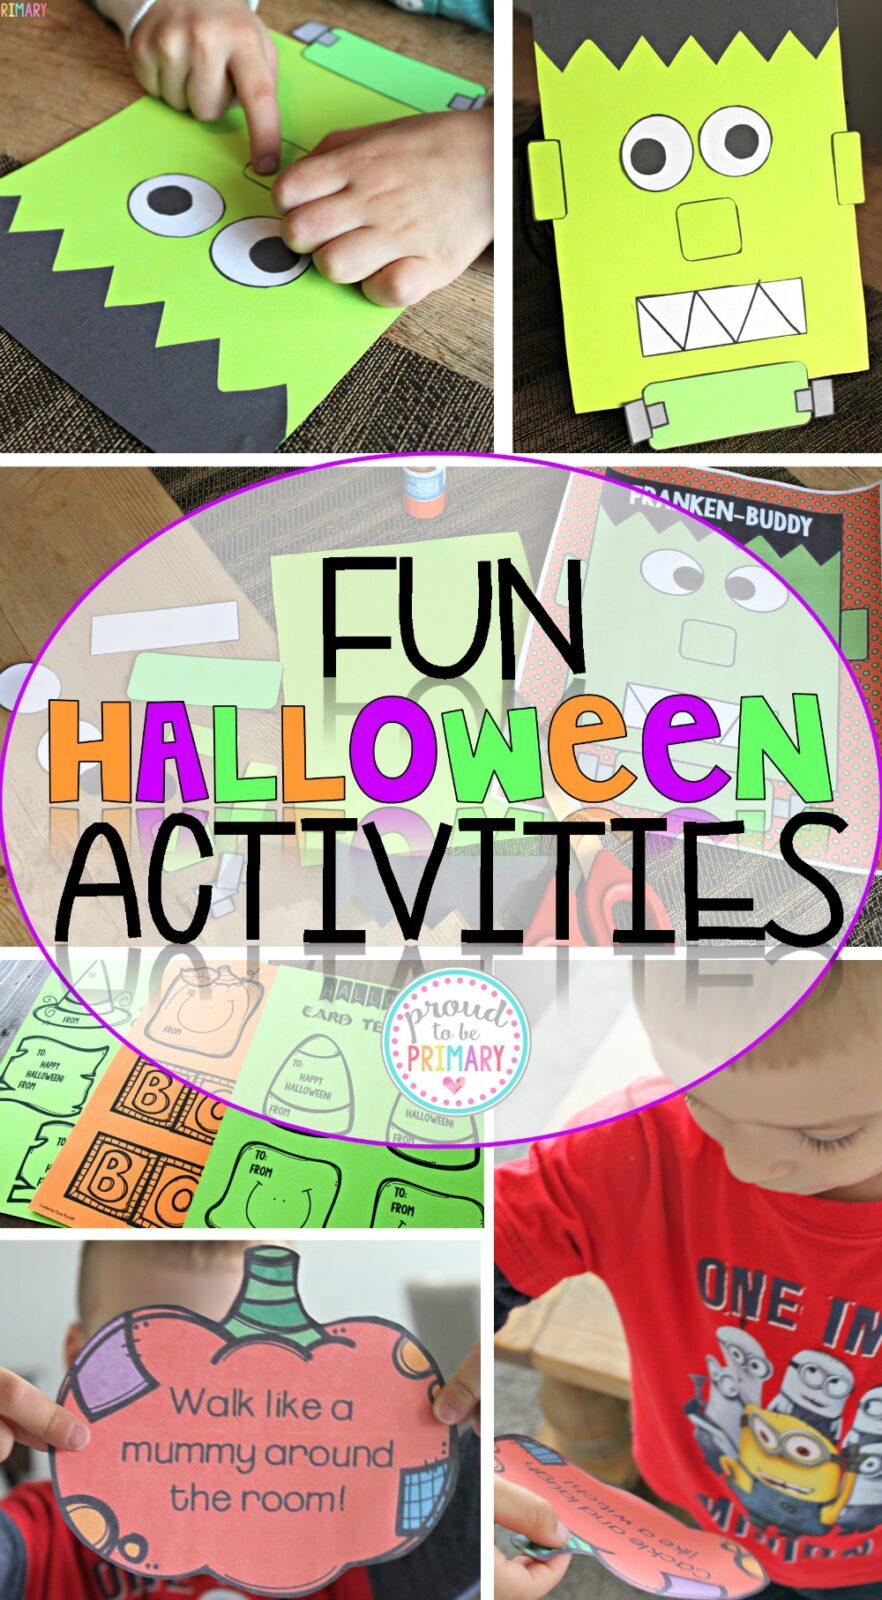 check out the fun halloween activities for kids including a franken buddy craft and - Free Halloween Activities For Kids